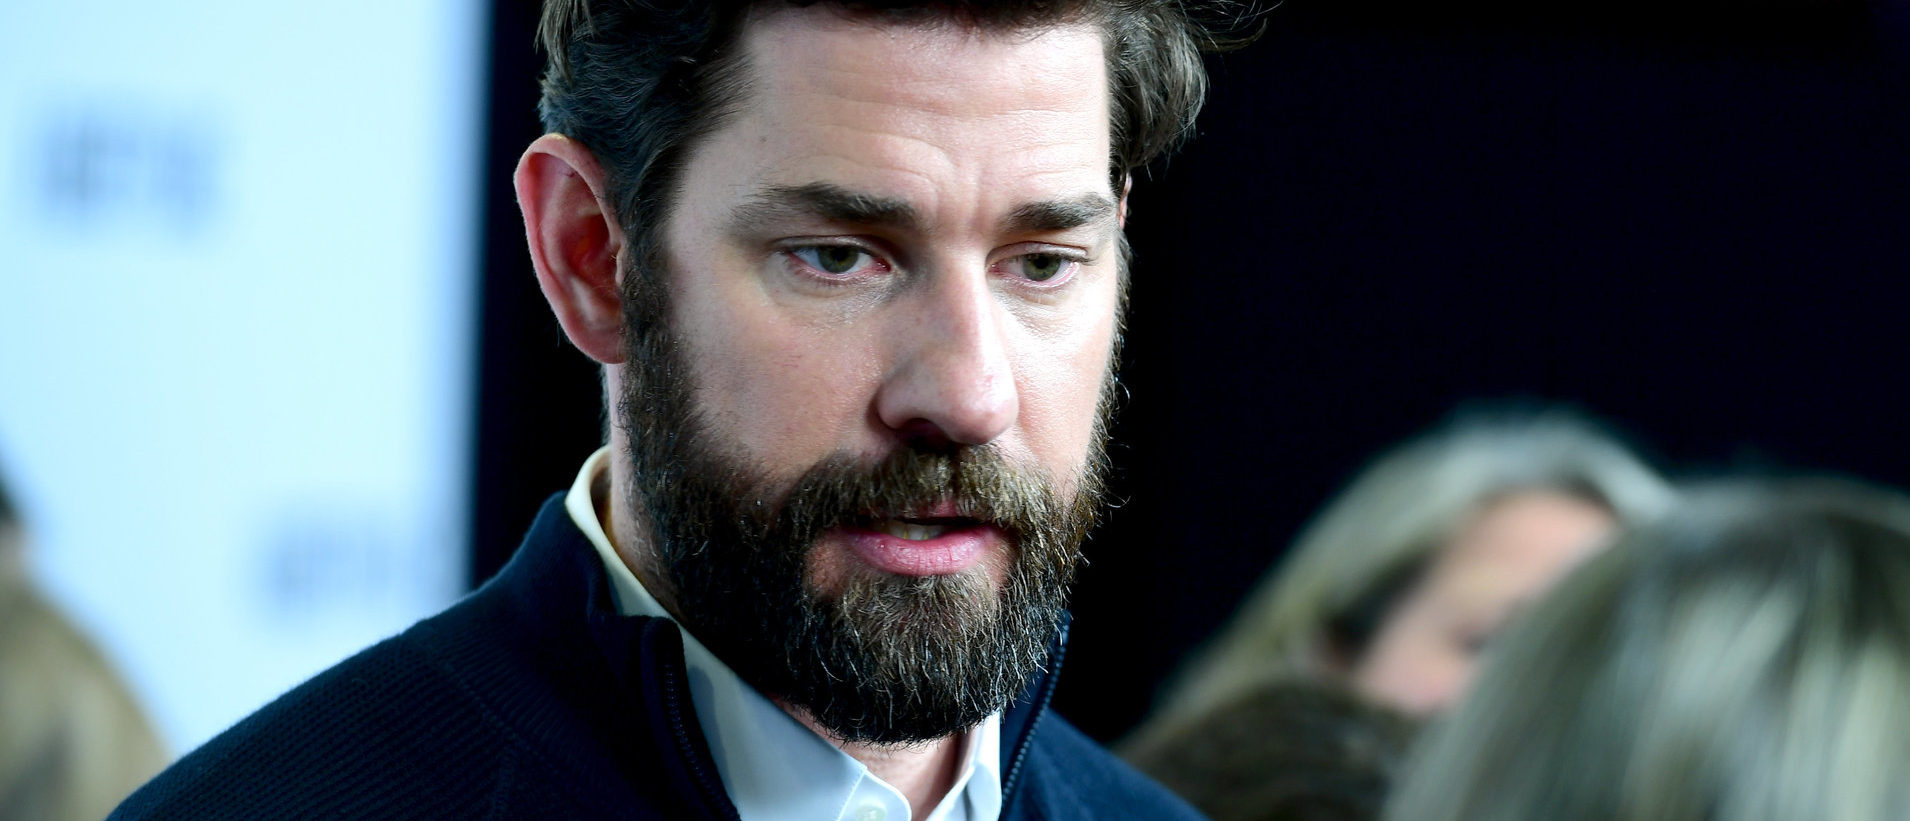 John Krasinski attending the A Quiet Place VIP fan screening held at the Curzon Soho in London. (Photo by Ian West/PA Images via Getty Images)